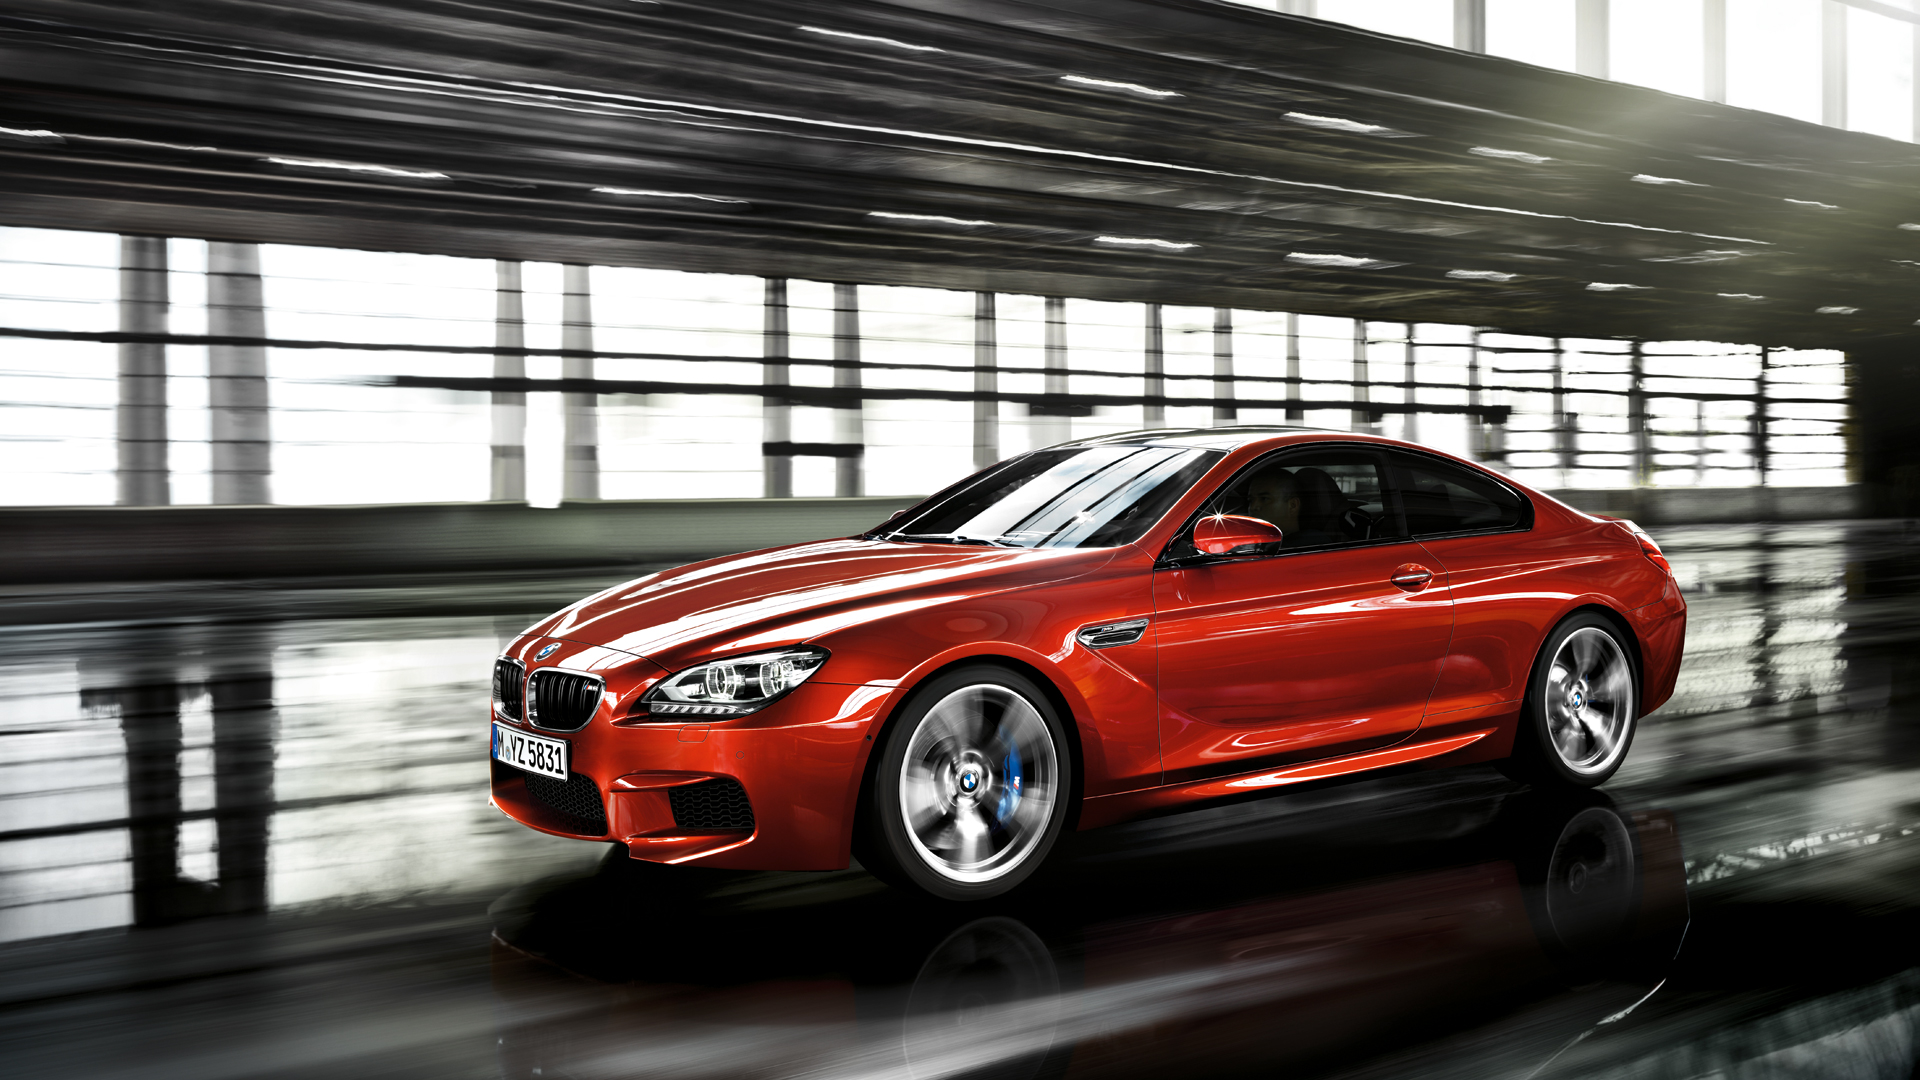 BMW M6 coupe image gallery 4 1920